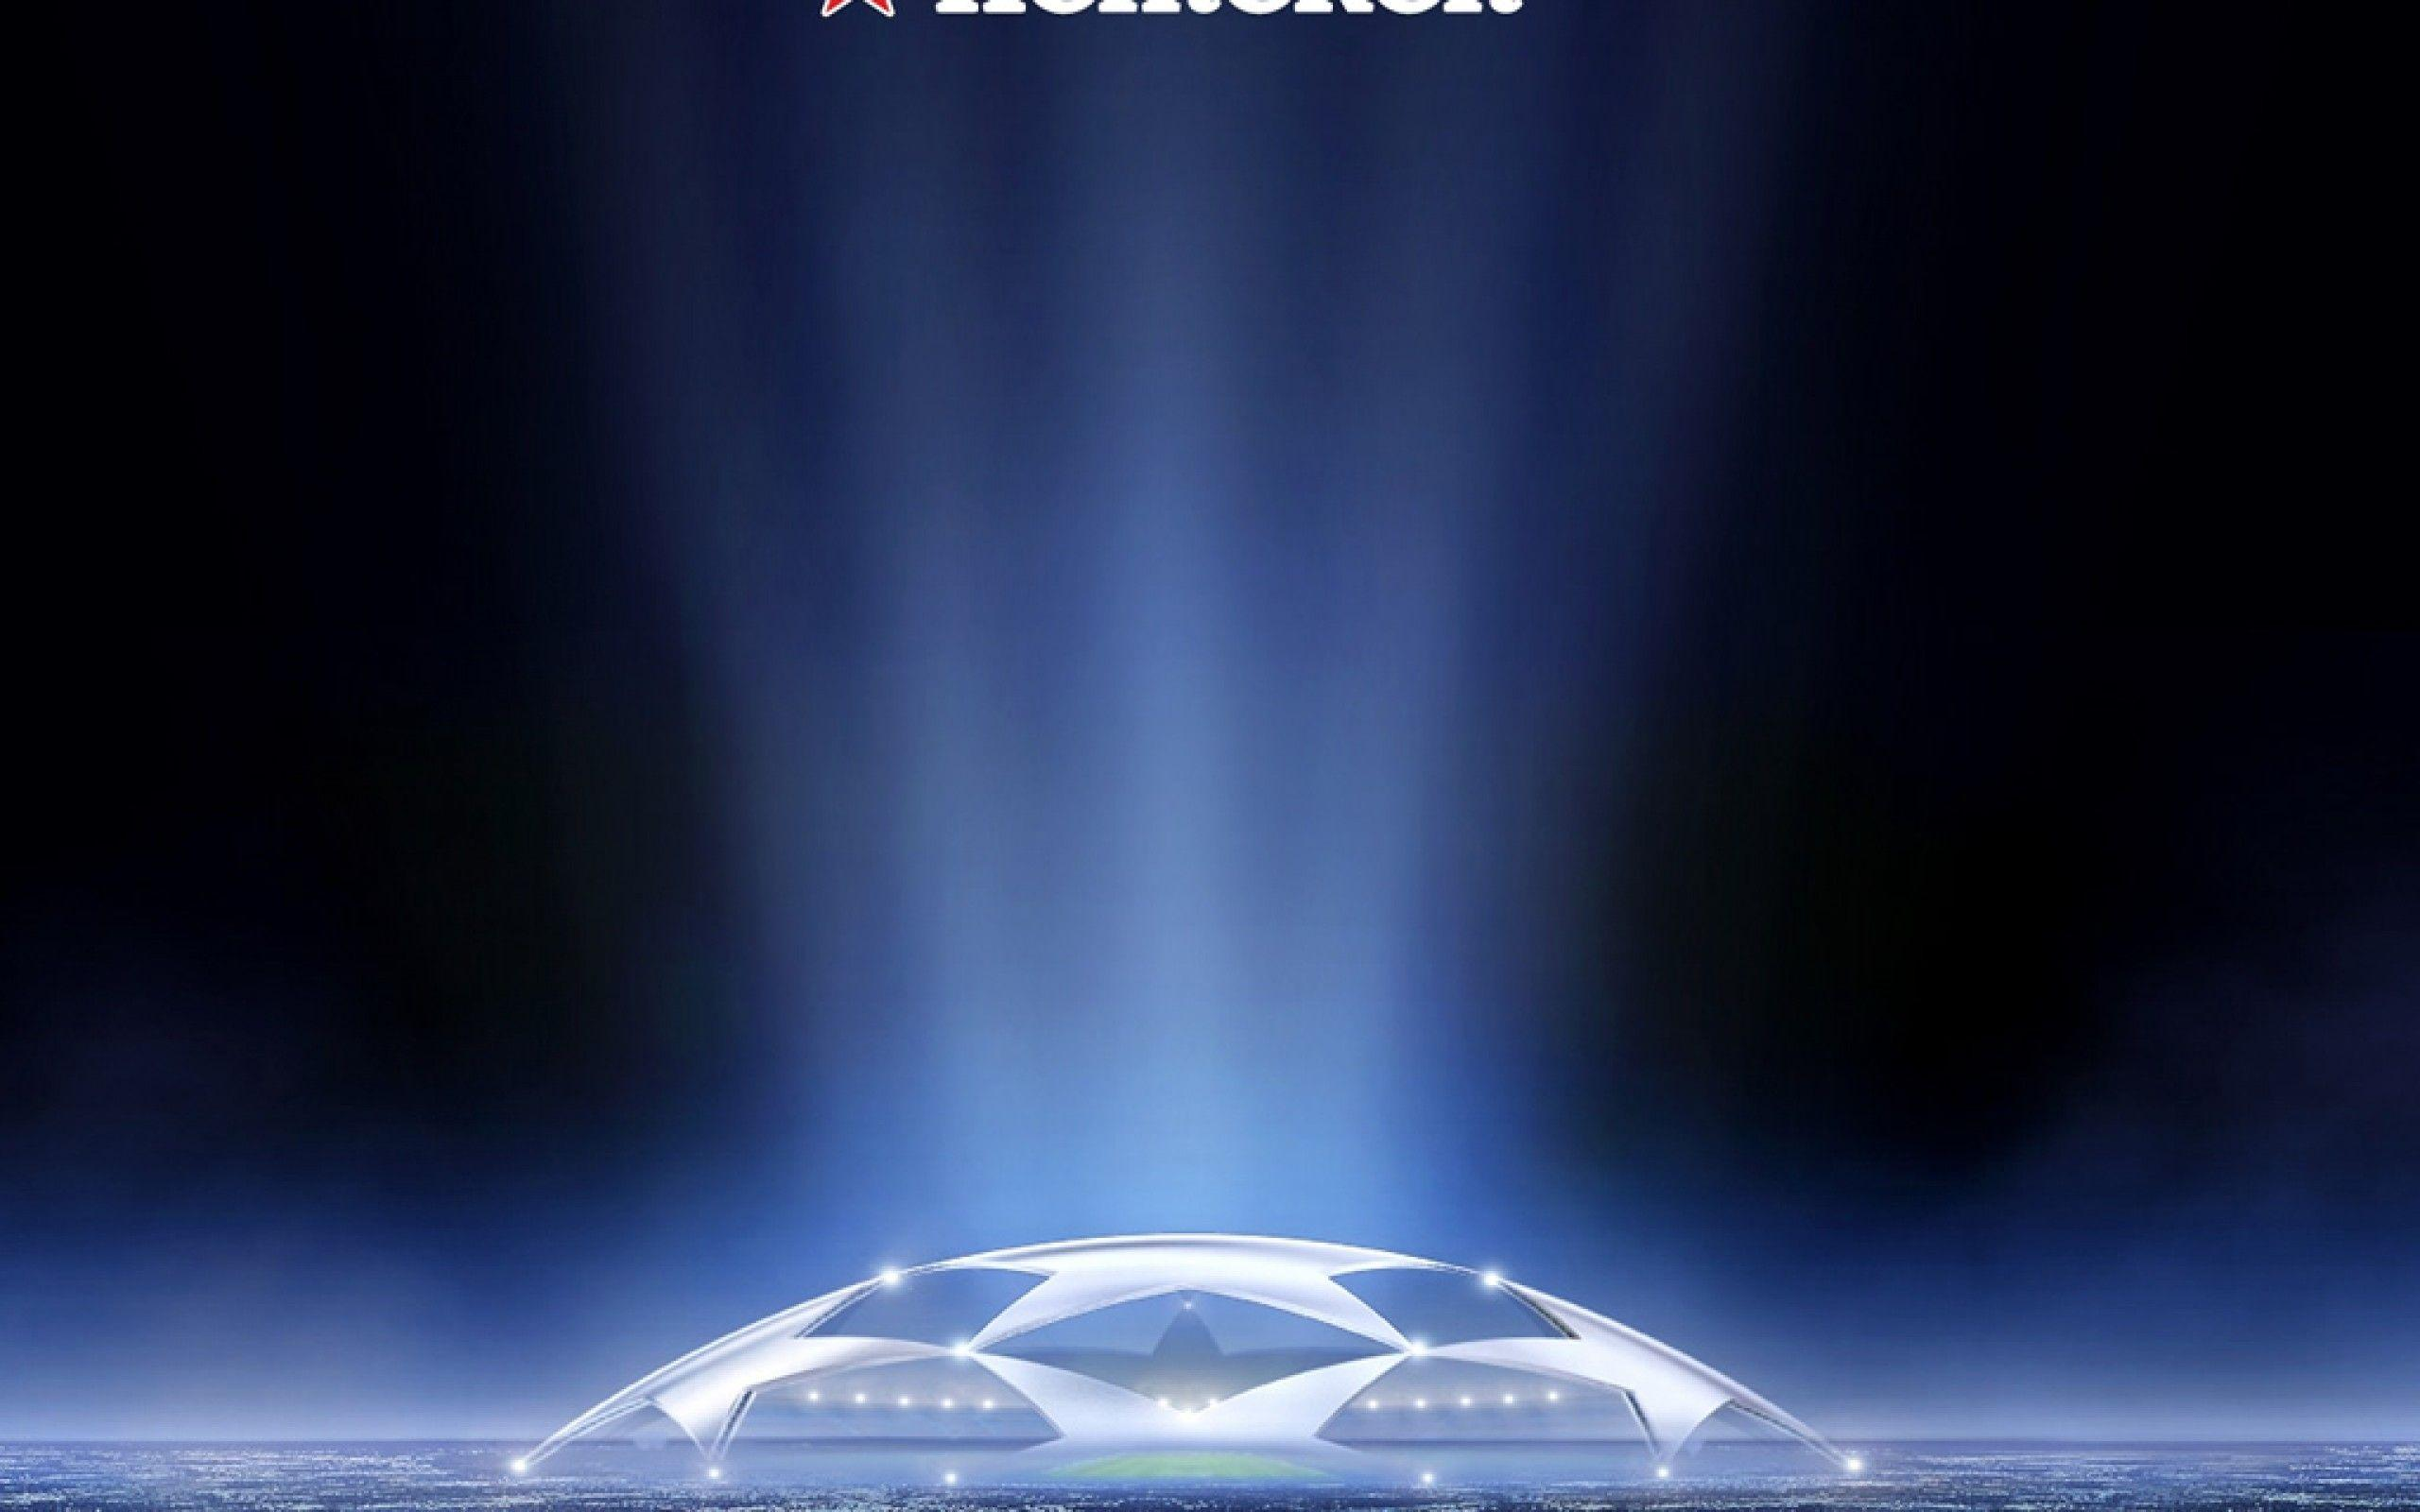 Champions league wallpapers wallpaper cave for Ucl powerpoint template